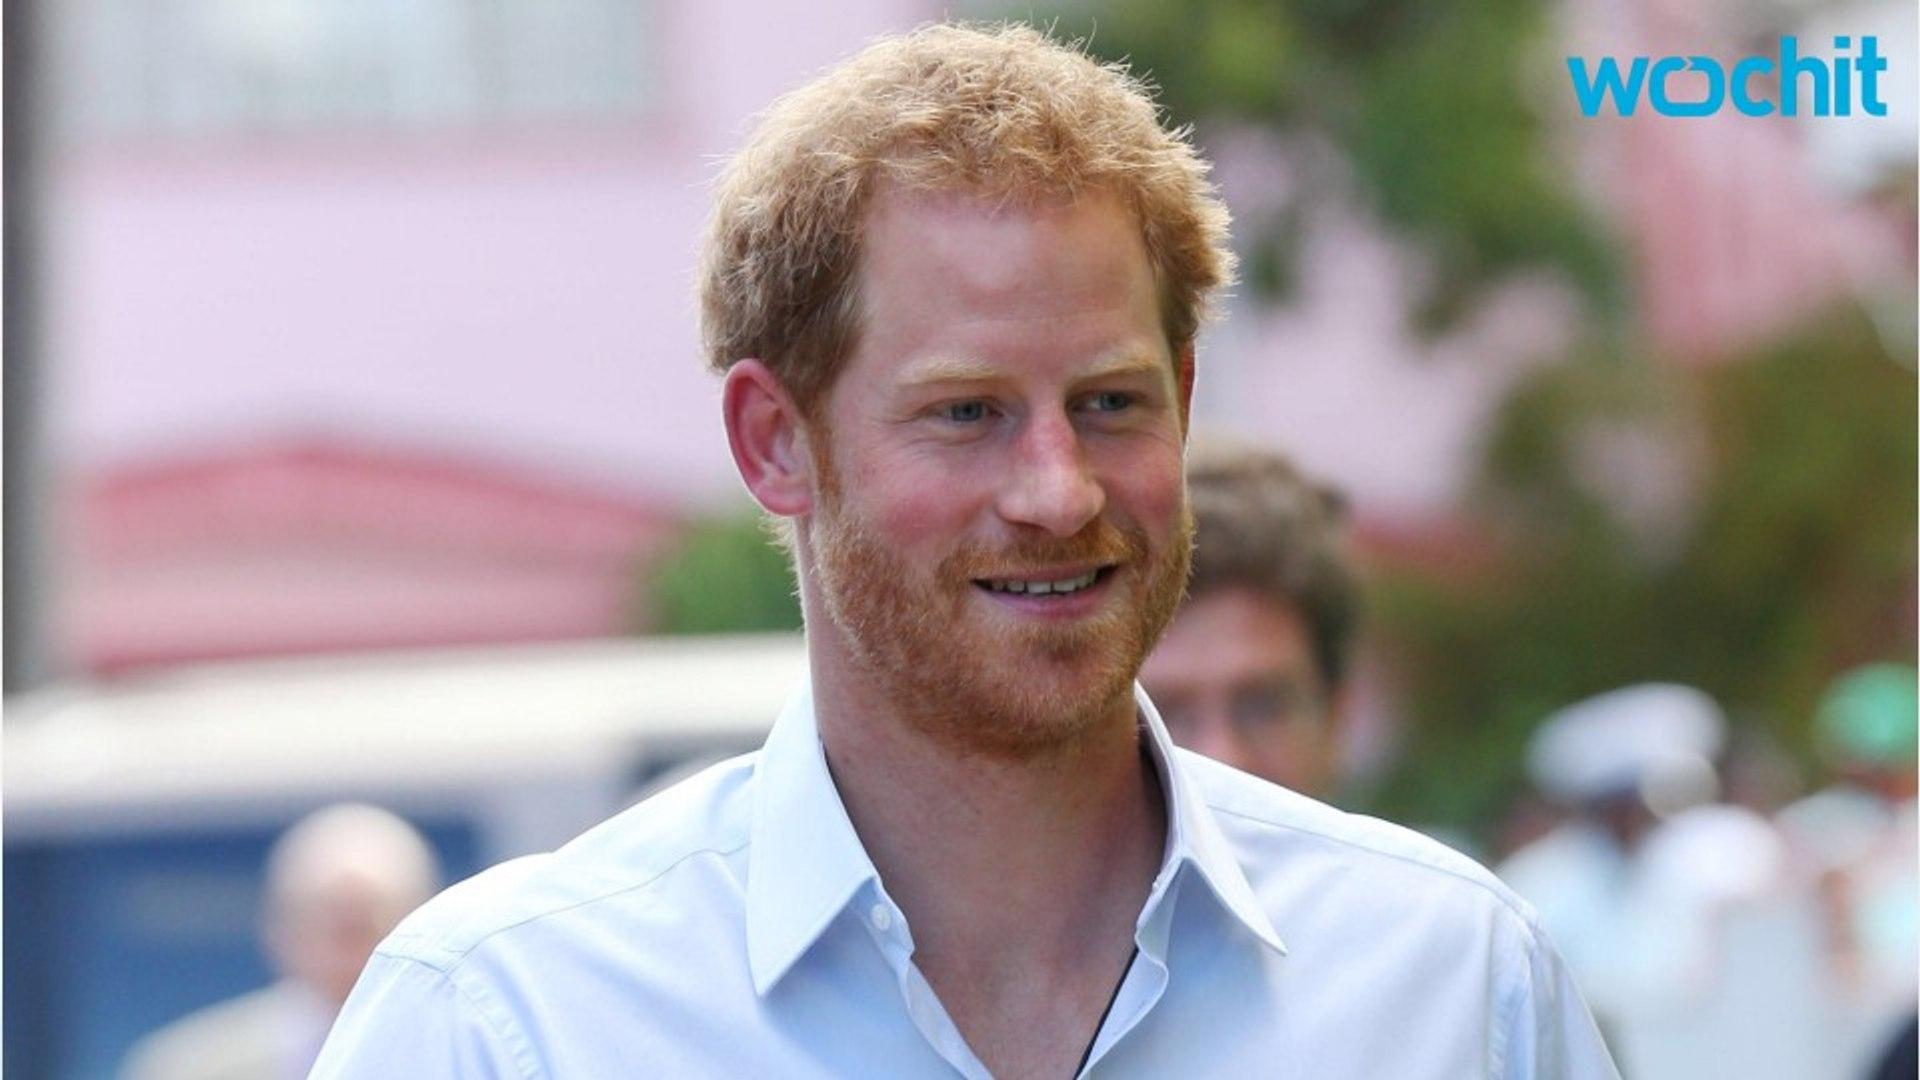 Prince Harry's New Documentary